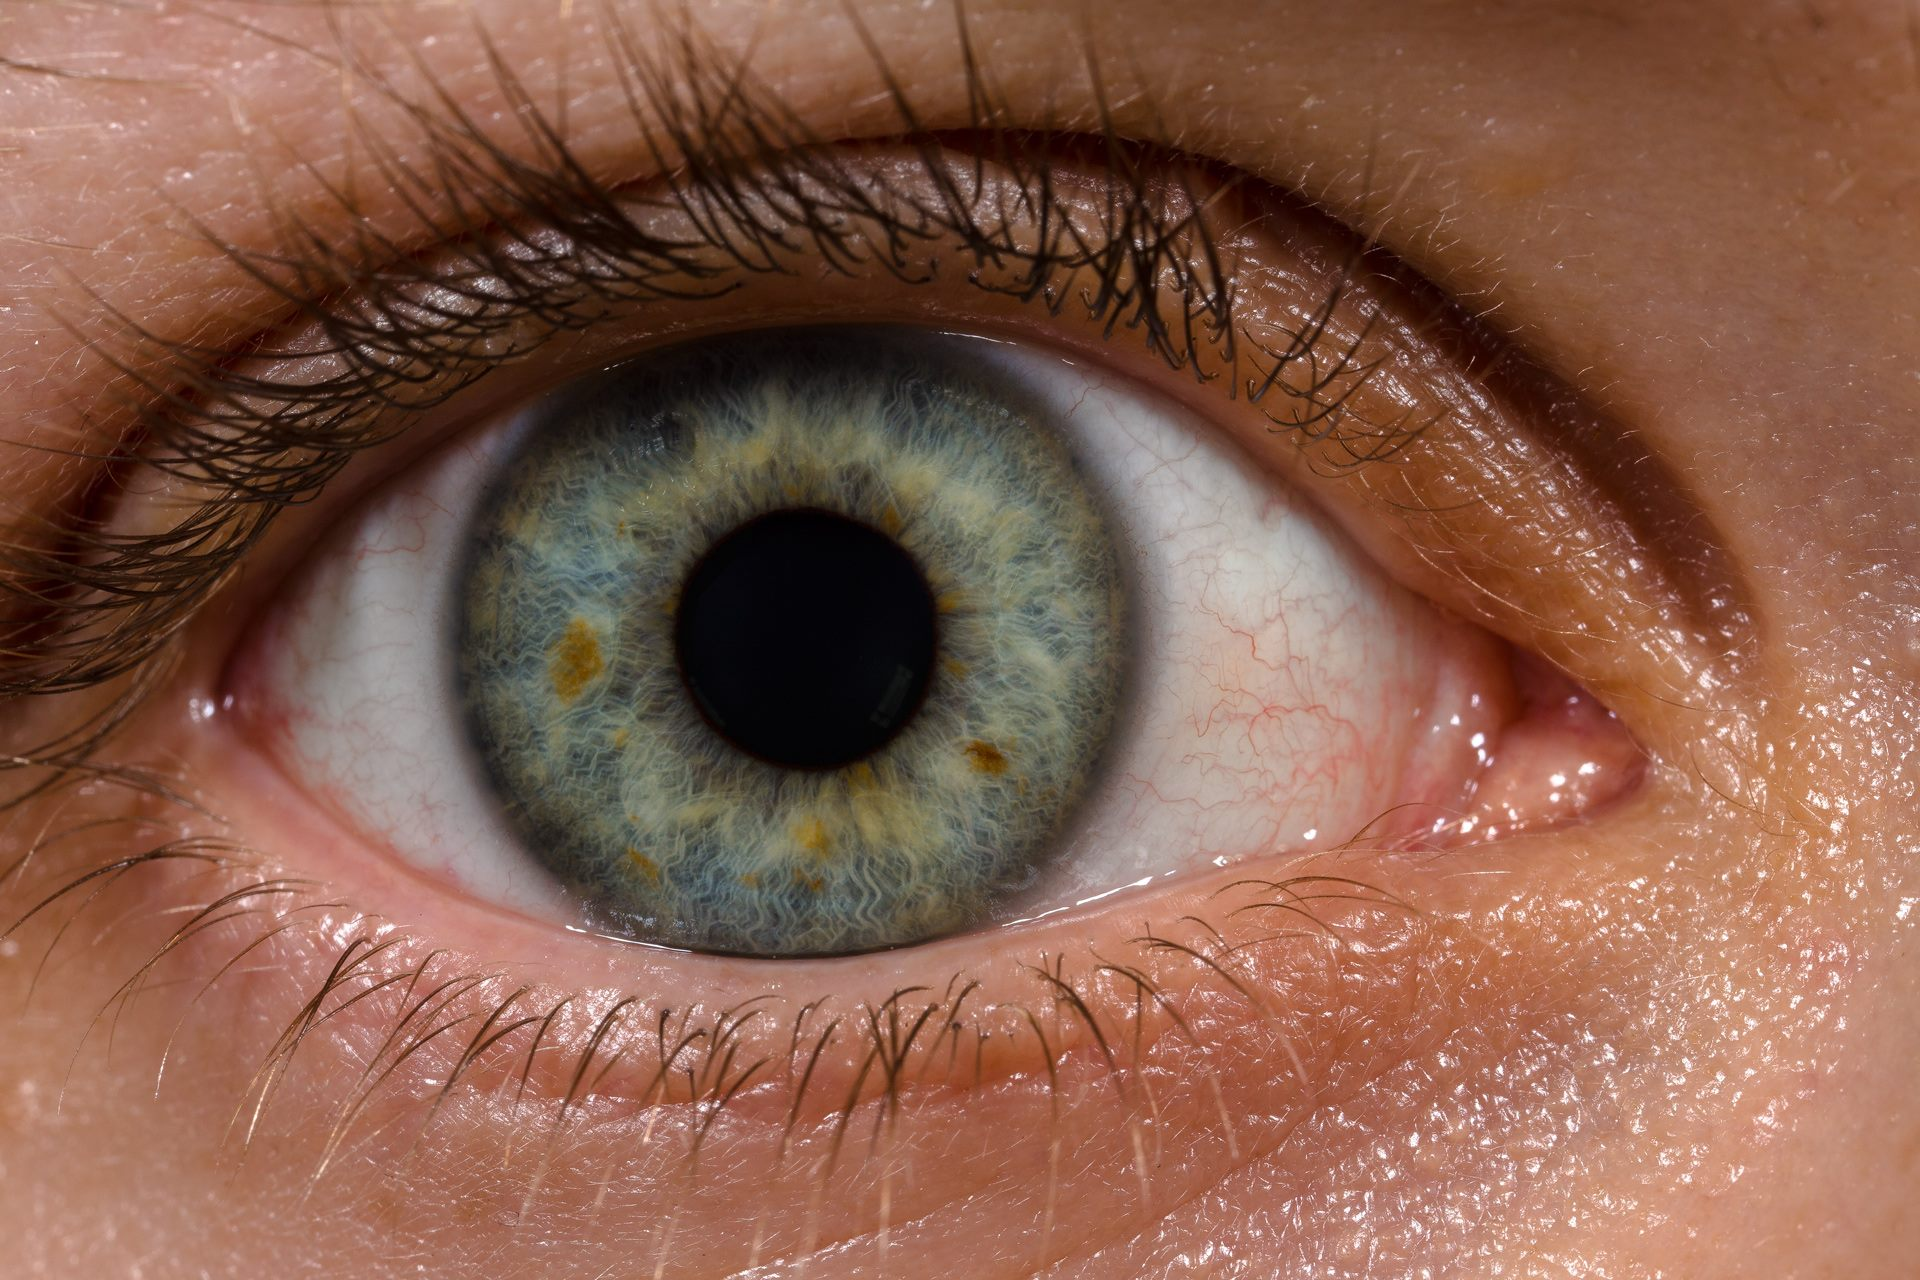 File:Human eye with blood vessels.jpg - Wikimedia Commons